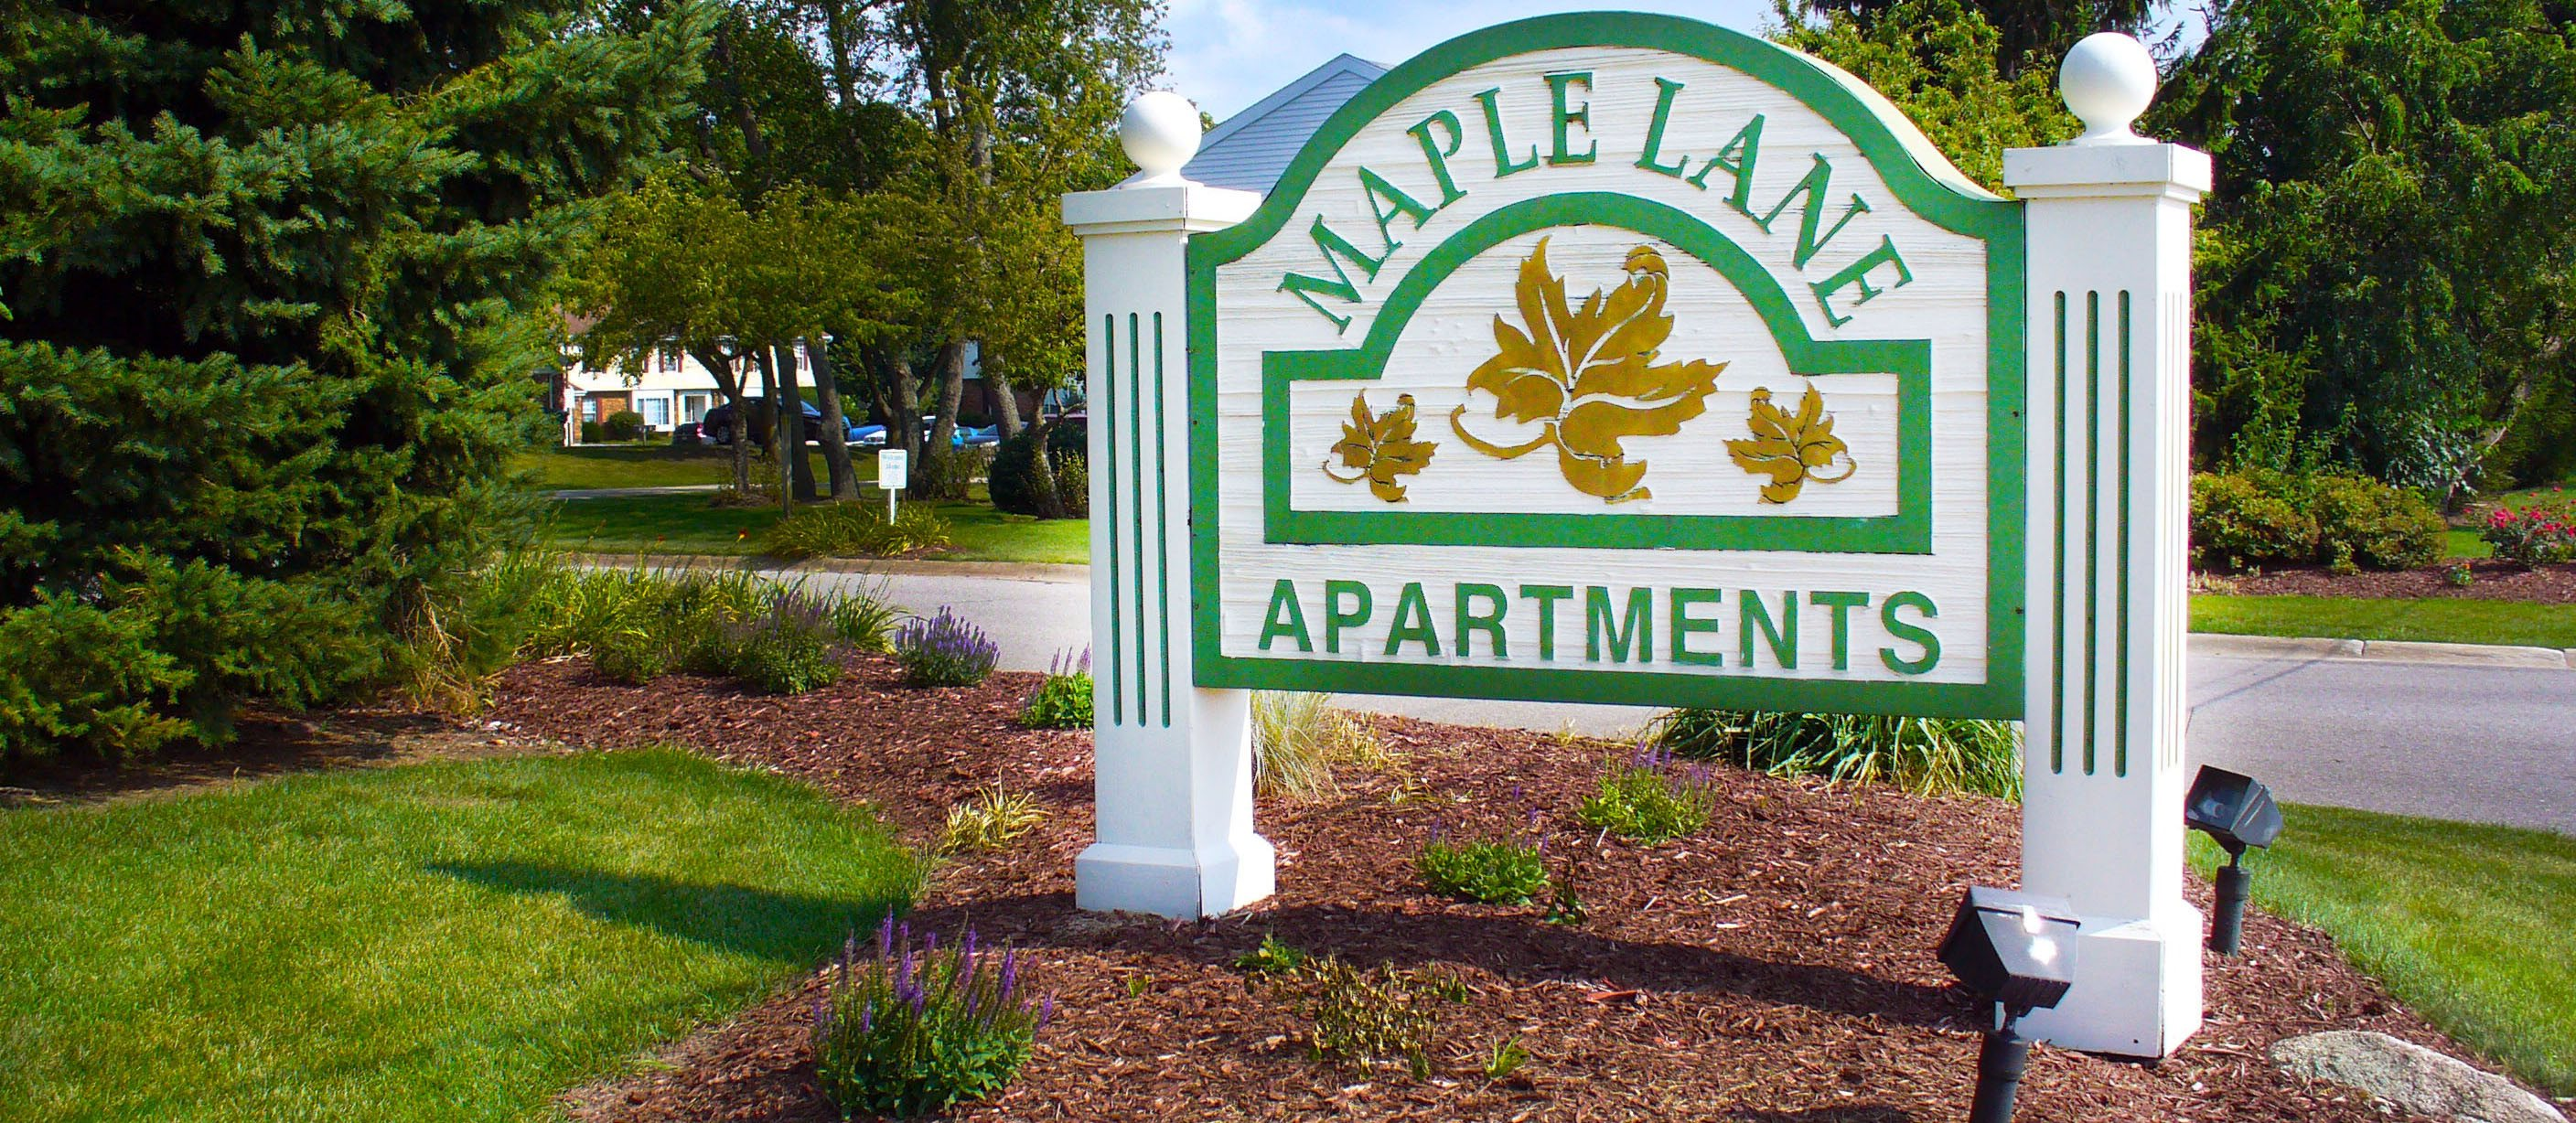 Maple Lane Apartments Sign